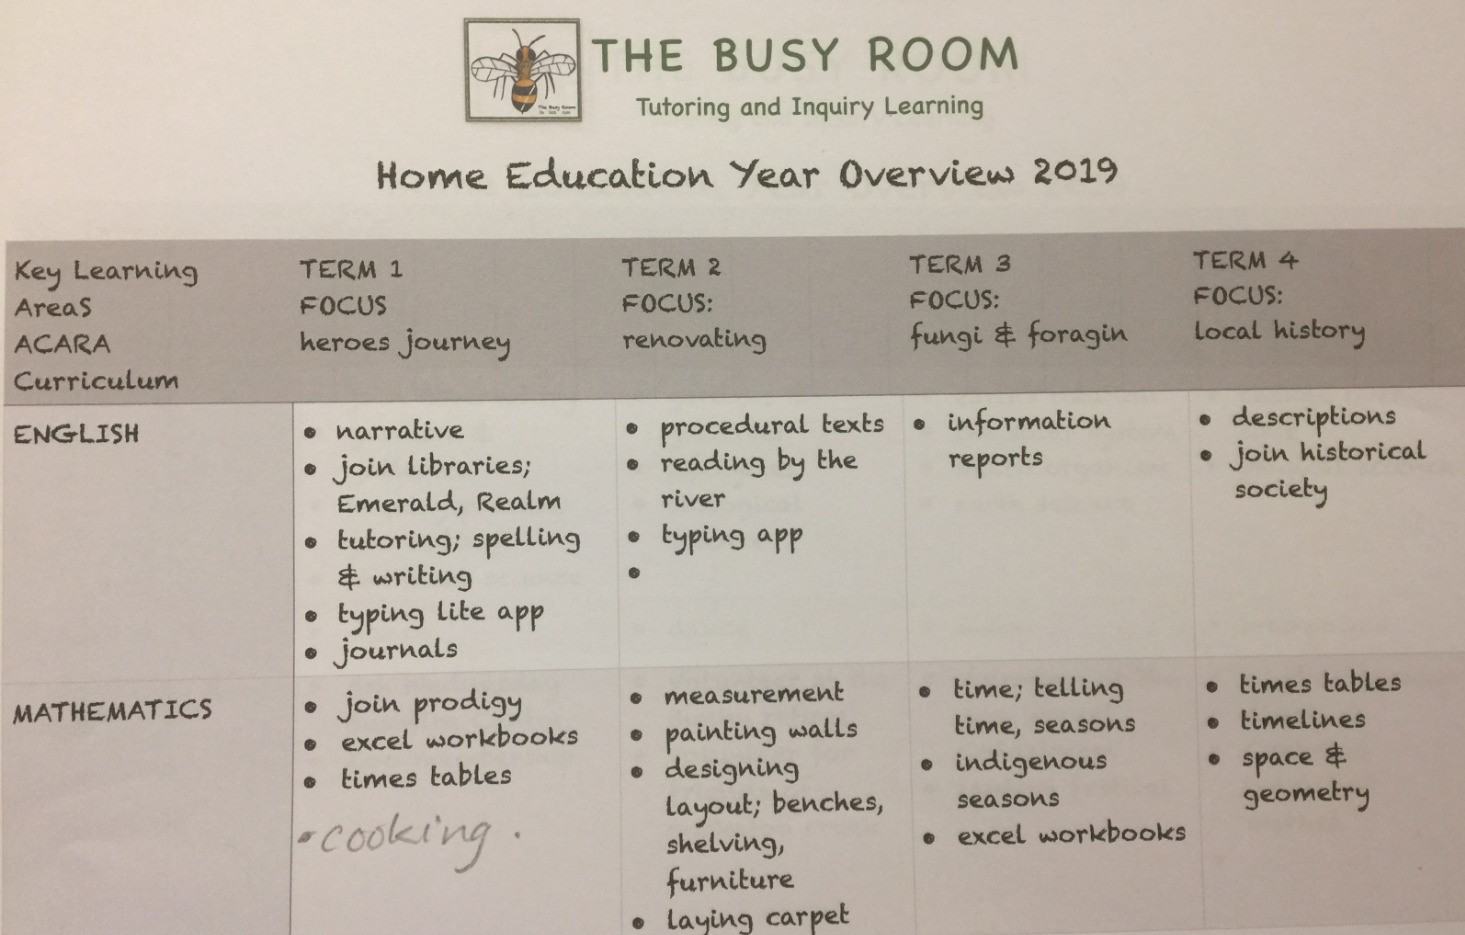 Home Education Year Overview